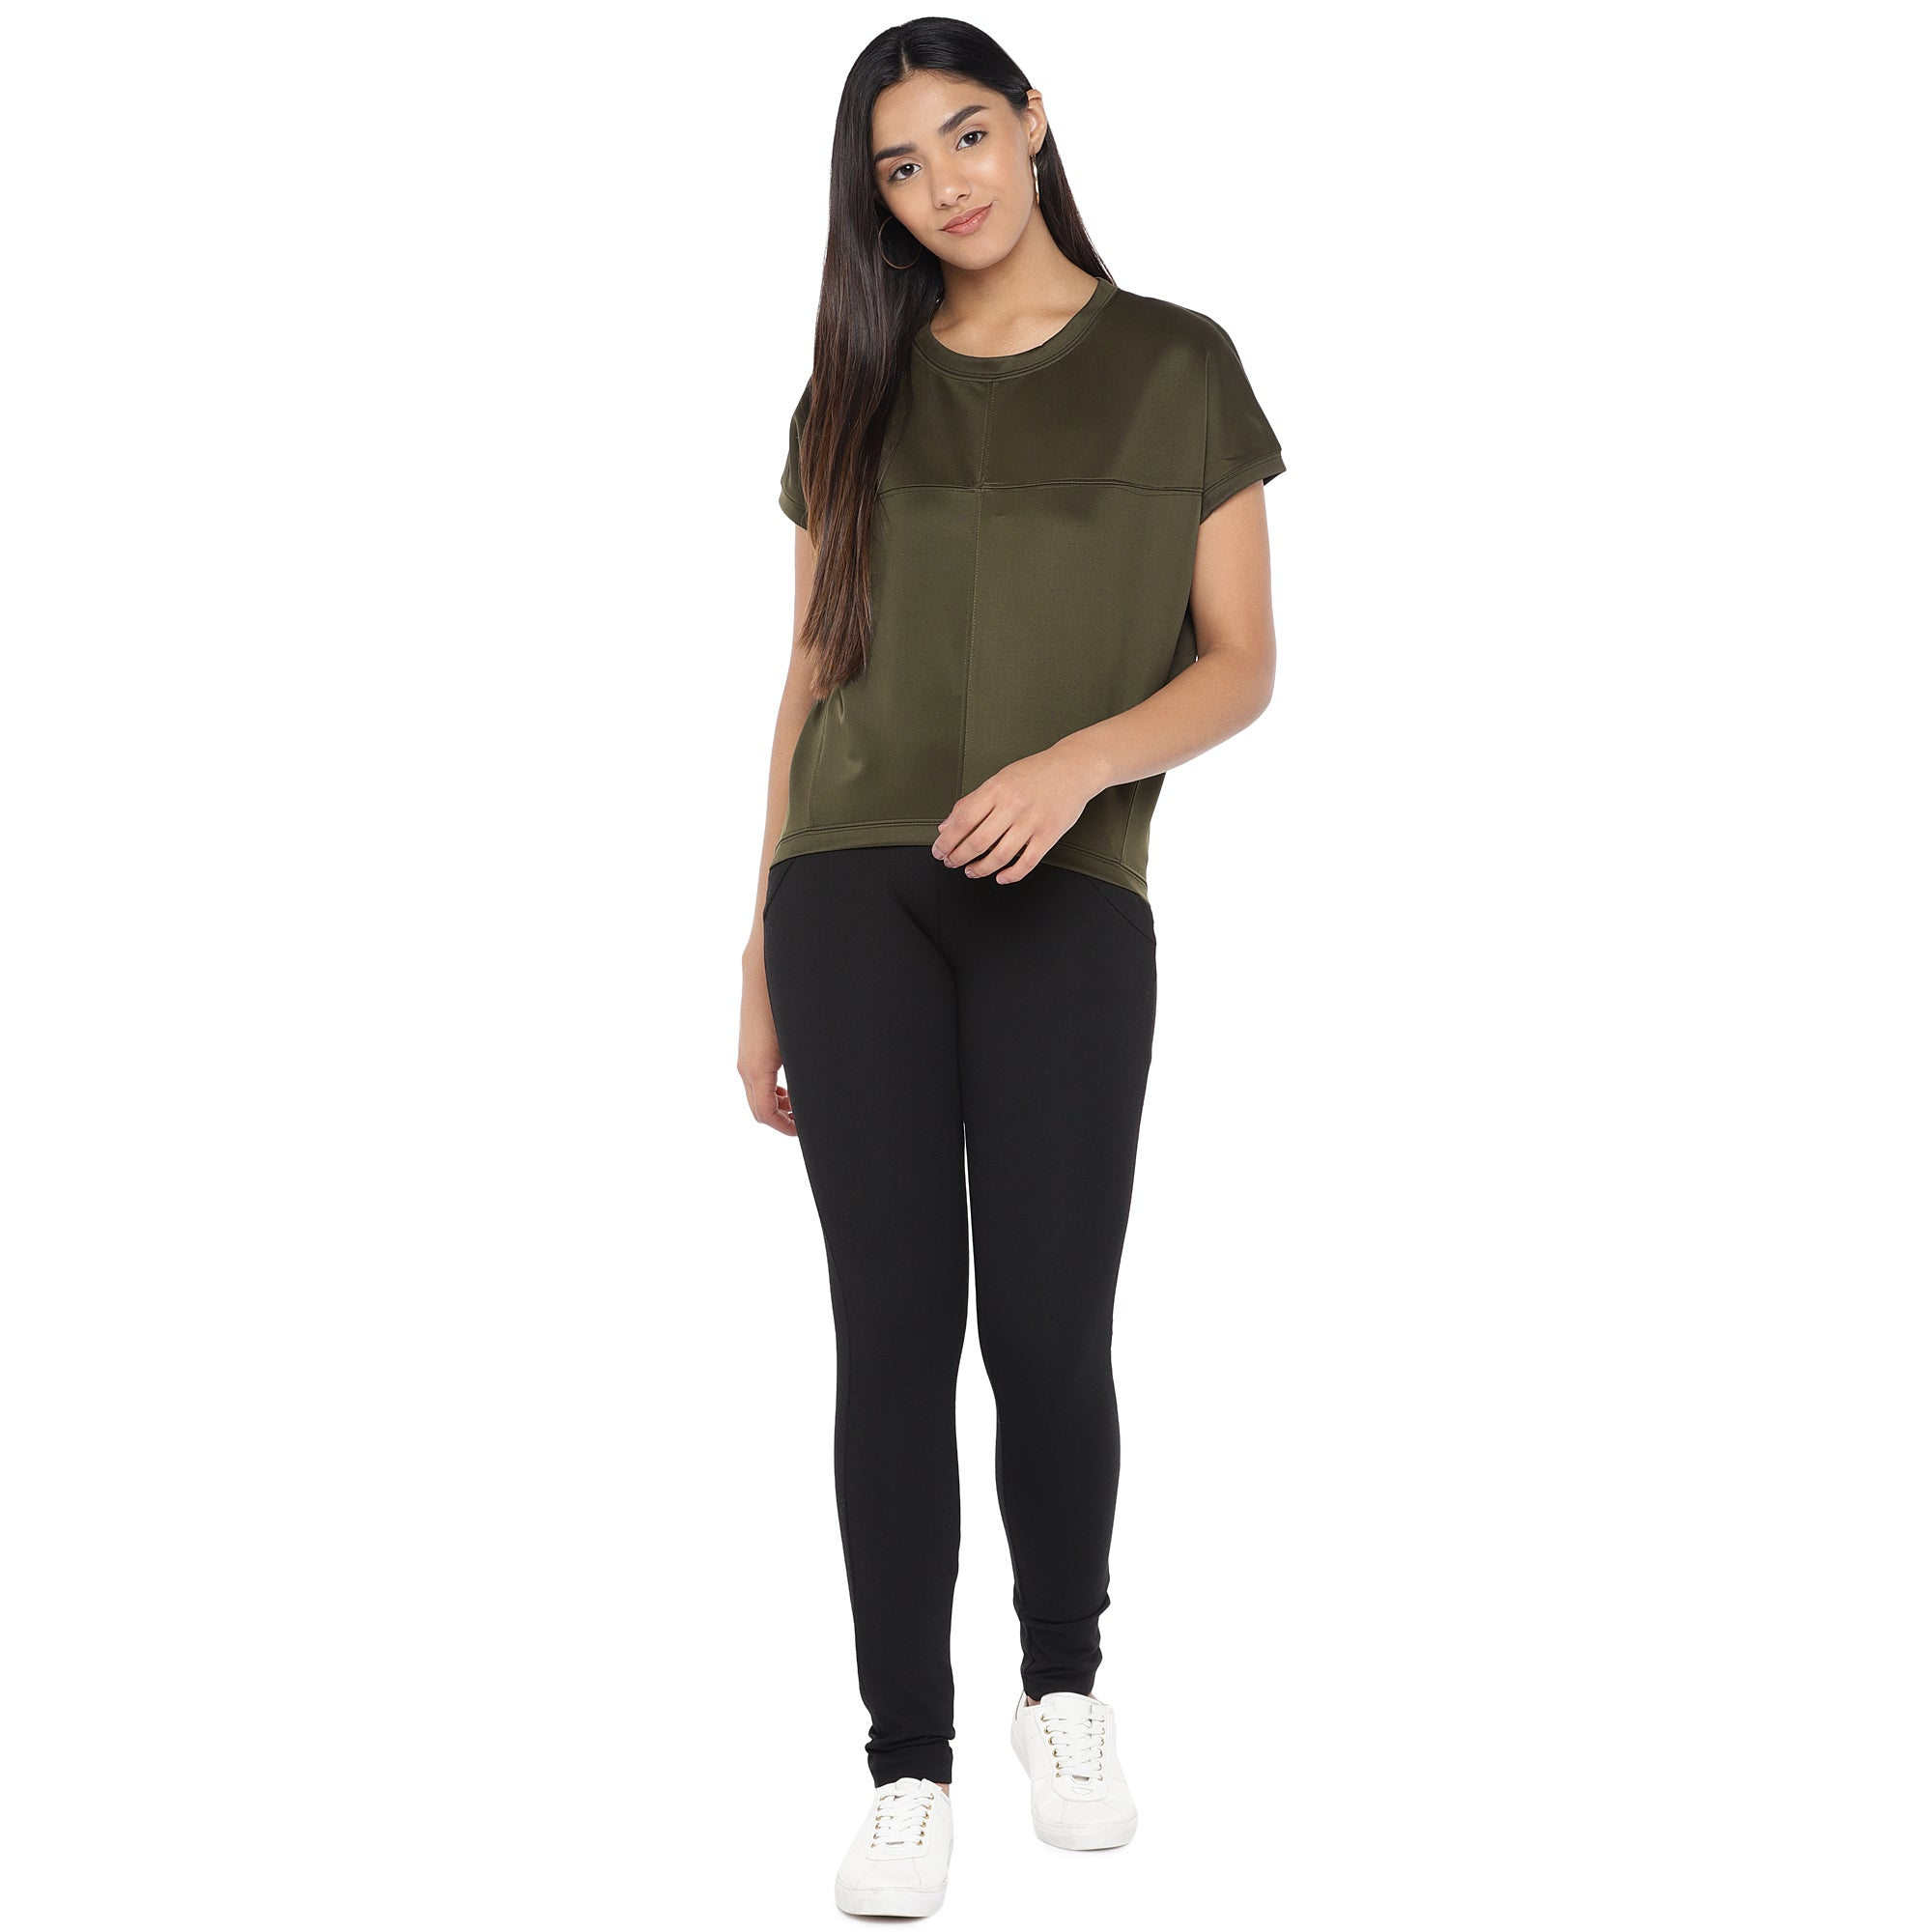 Olive Green Colourblocked Top-4